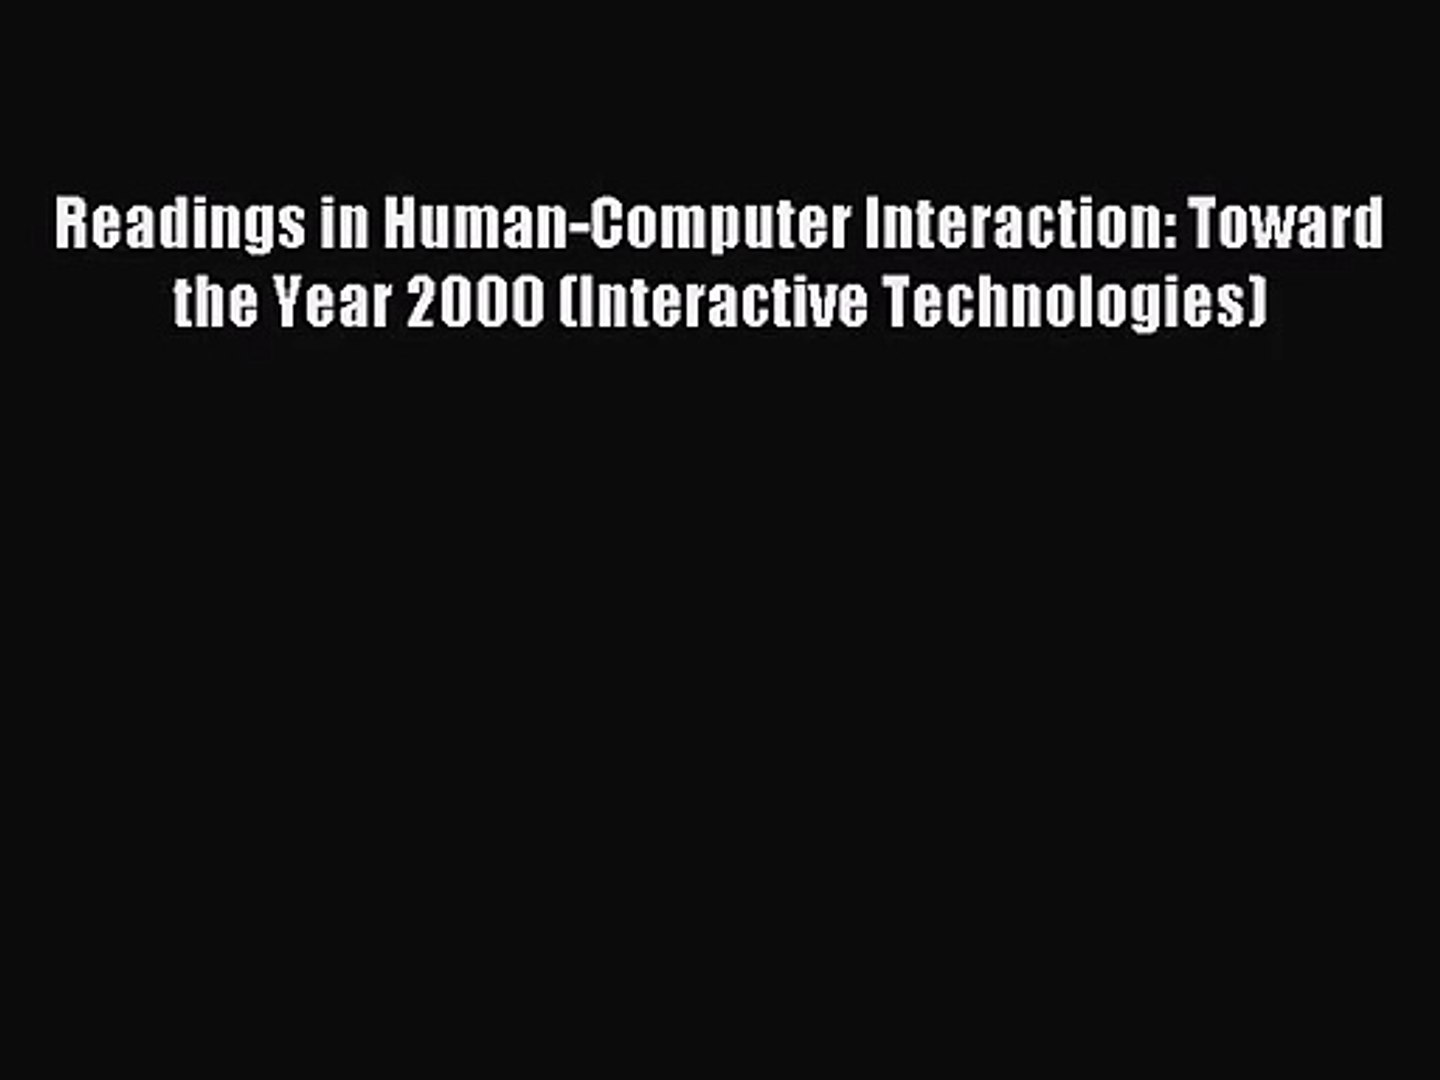 Readings in human-computer interaction : toward the year 2000